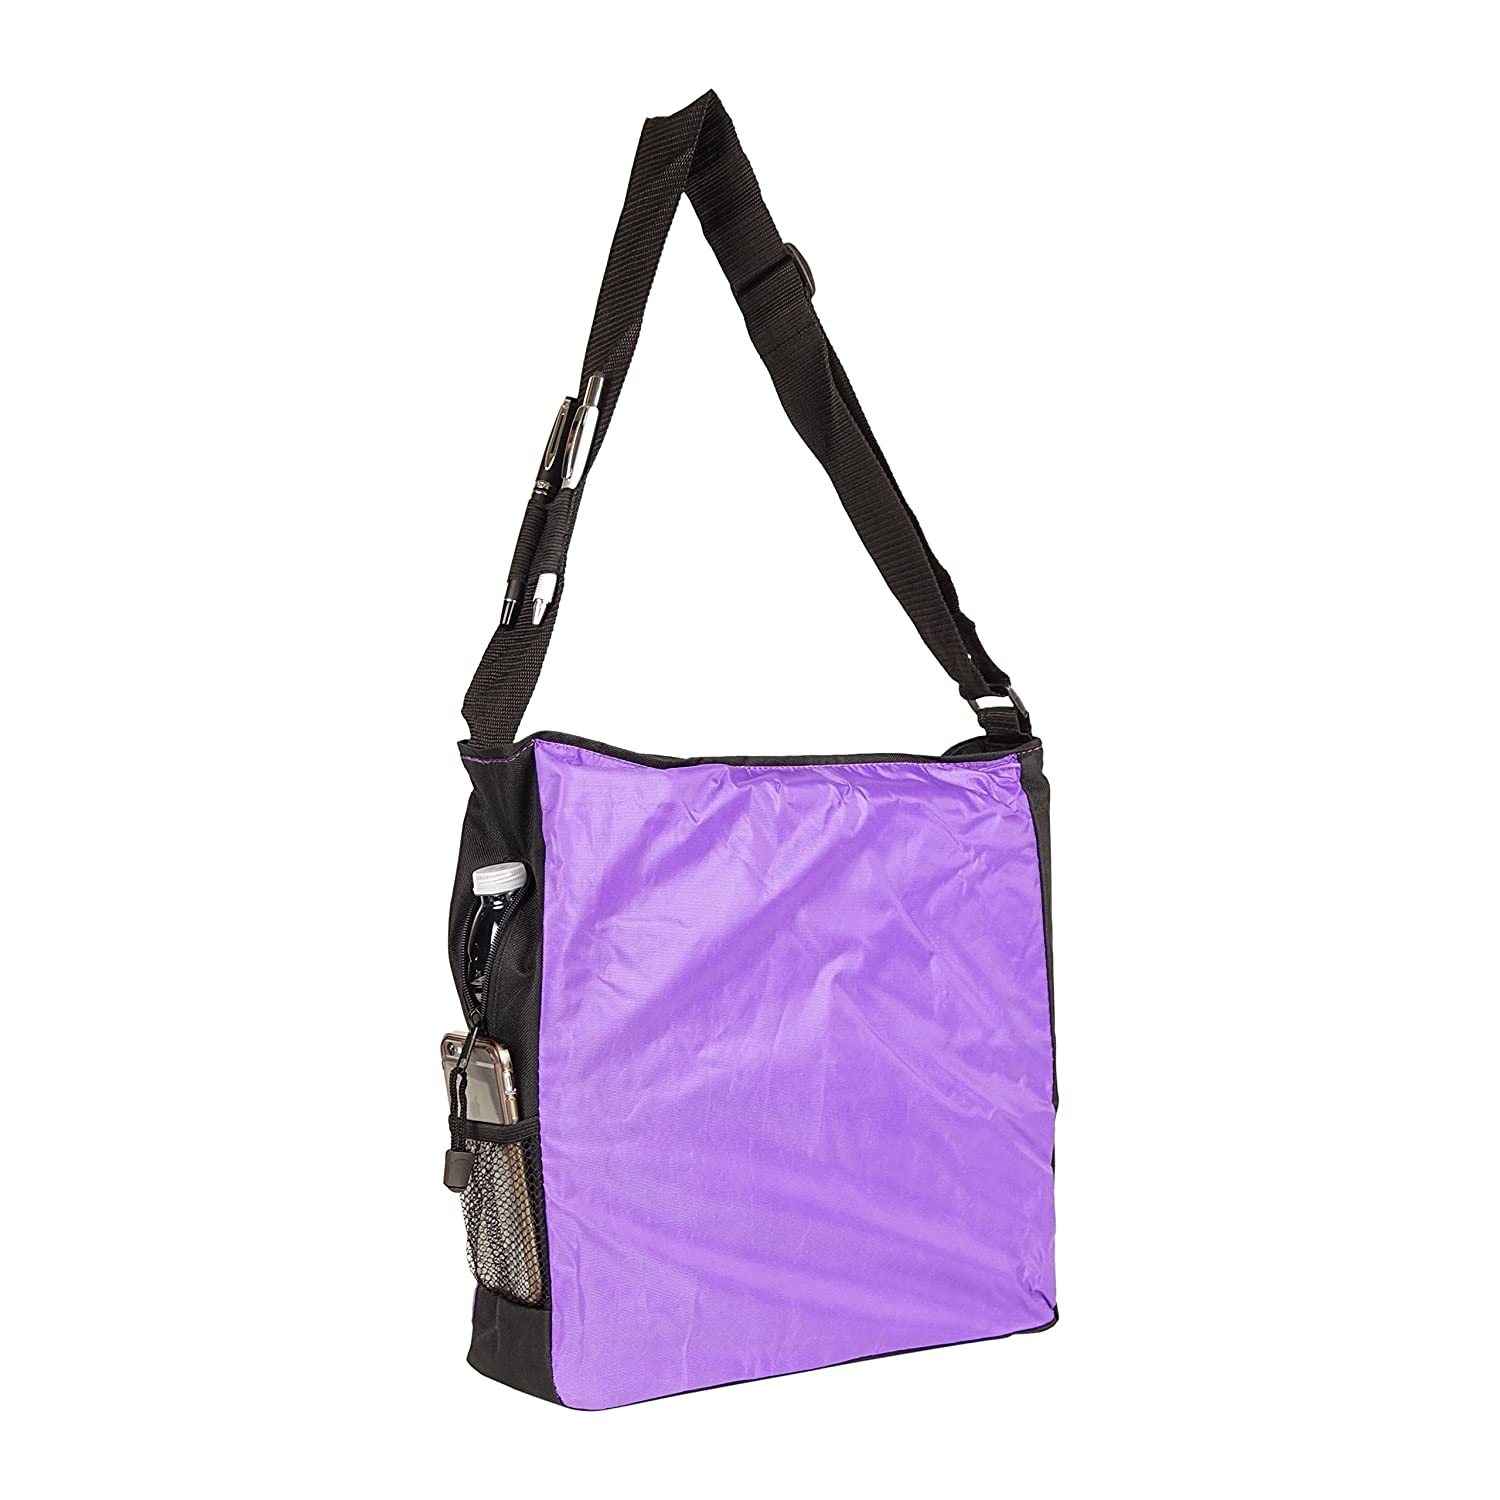 48 Pack NuFazes 13-1//4 x 14-1//2 Utility Multifunction Tote Single Strap Shopping Bag